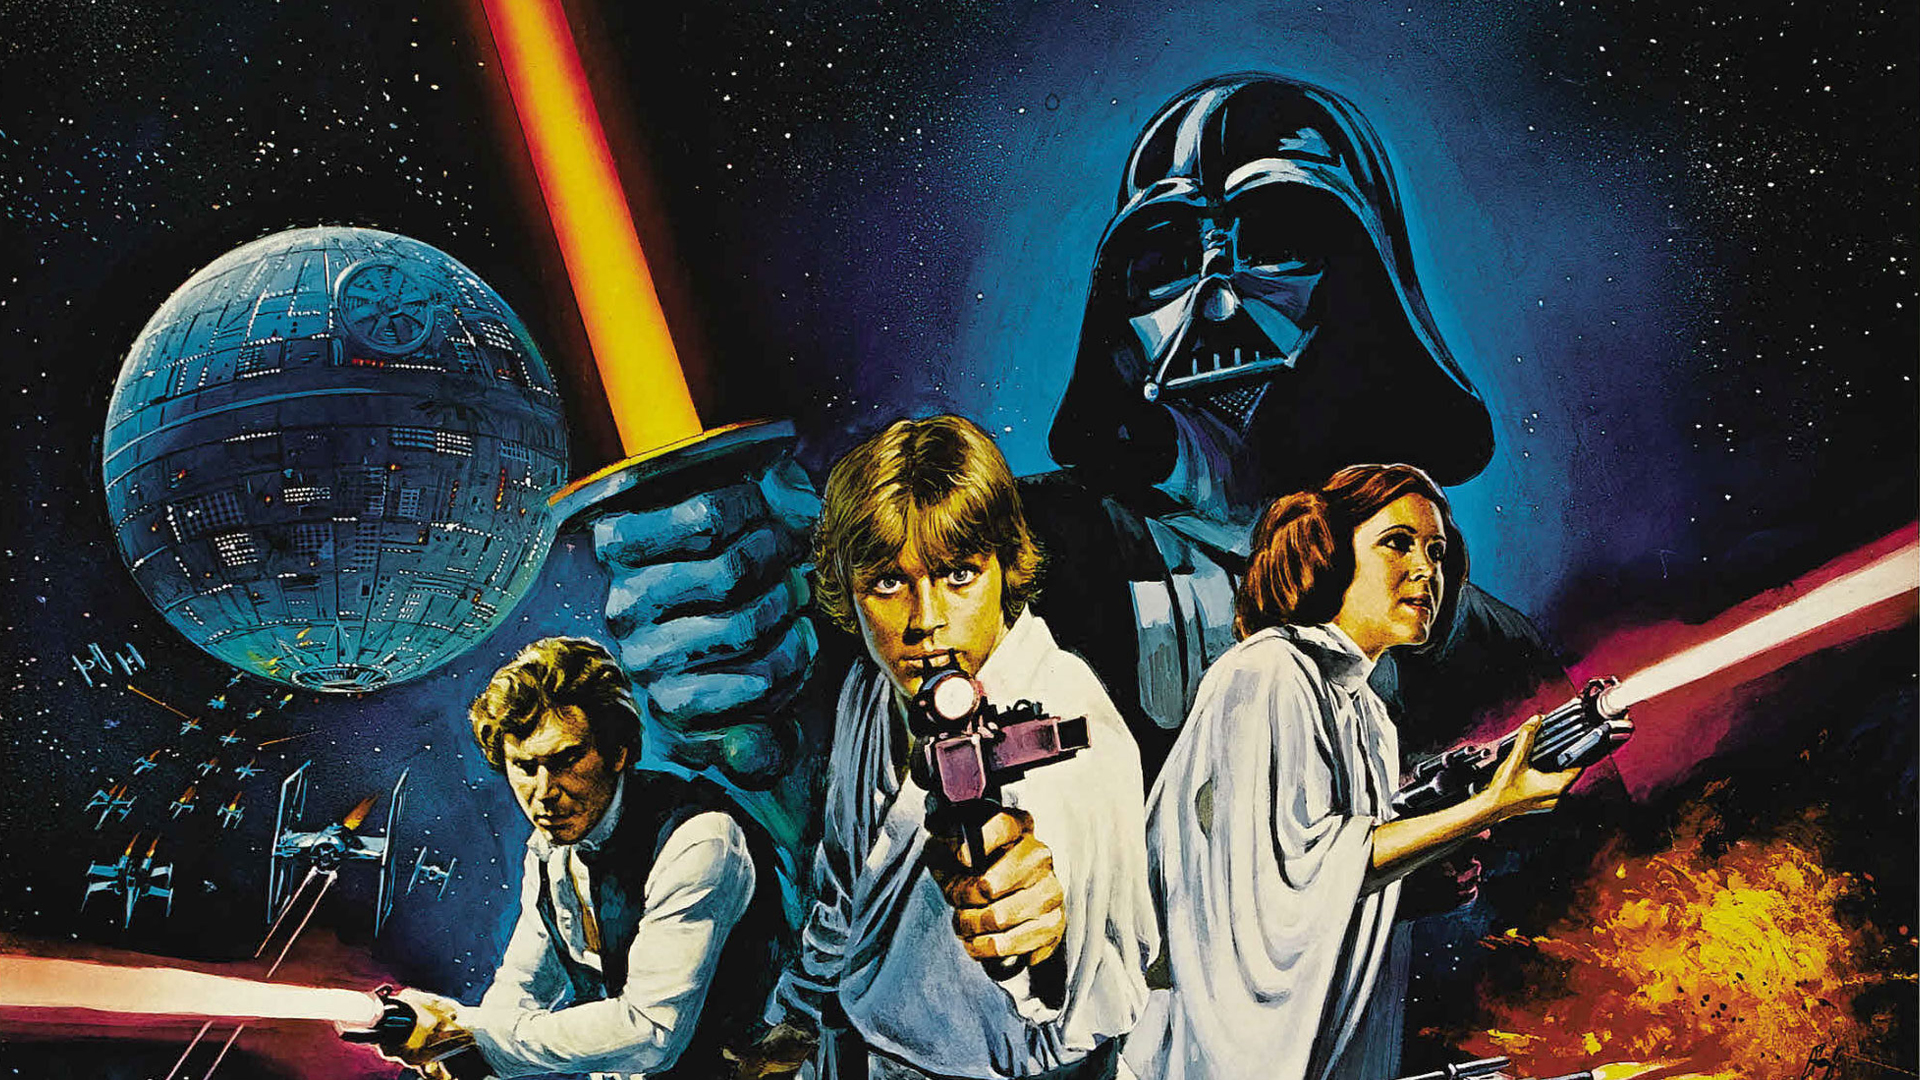 Original 1977 Star Wars 35mm Print Has Been Restored And Released